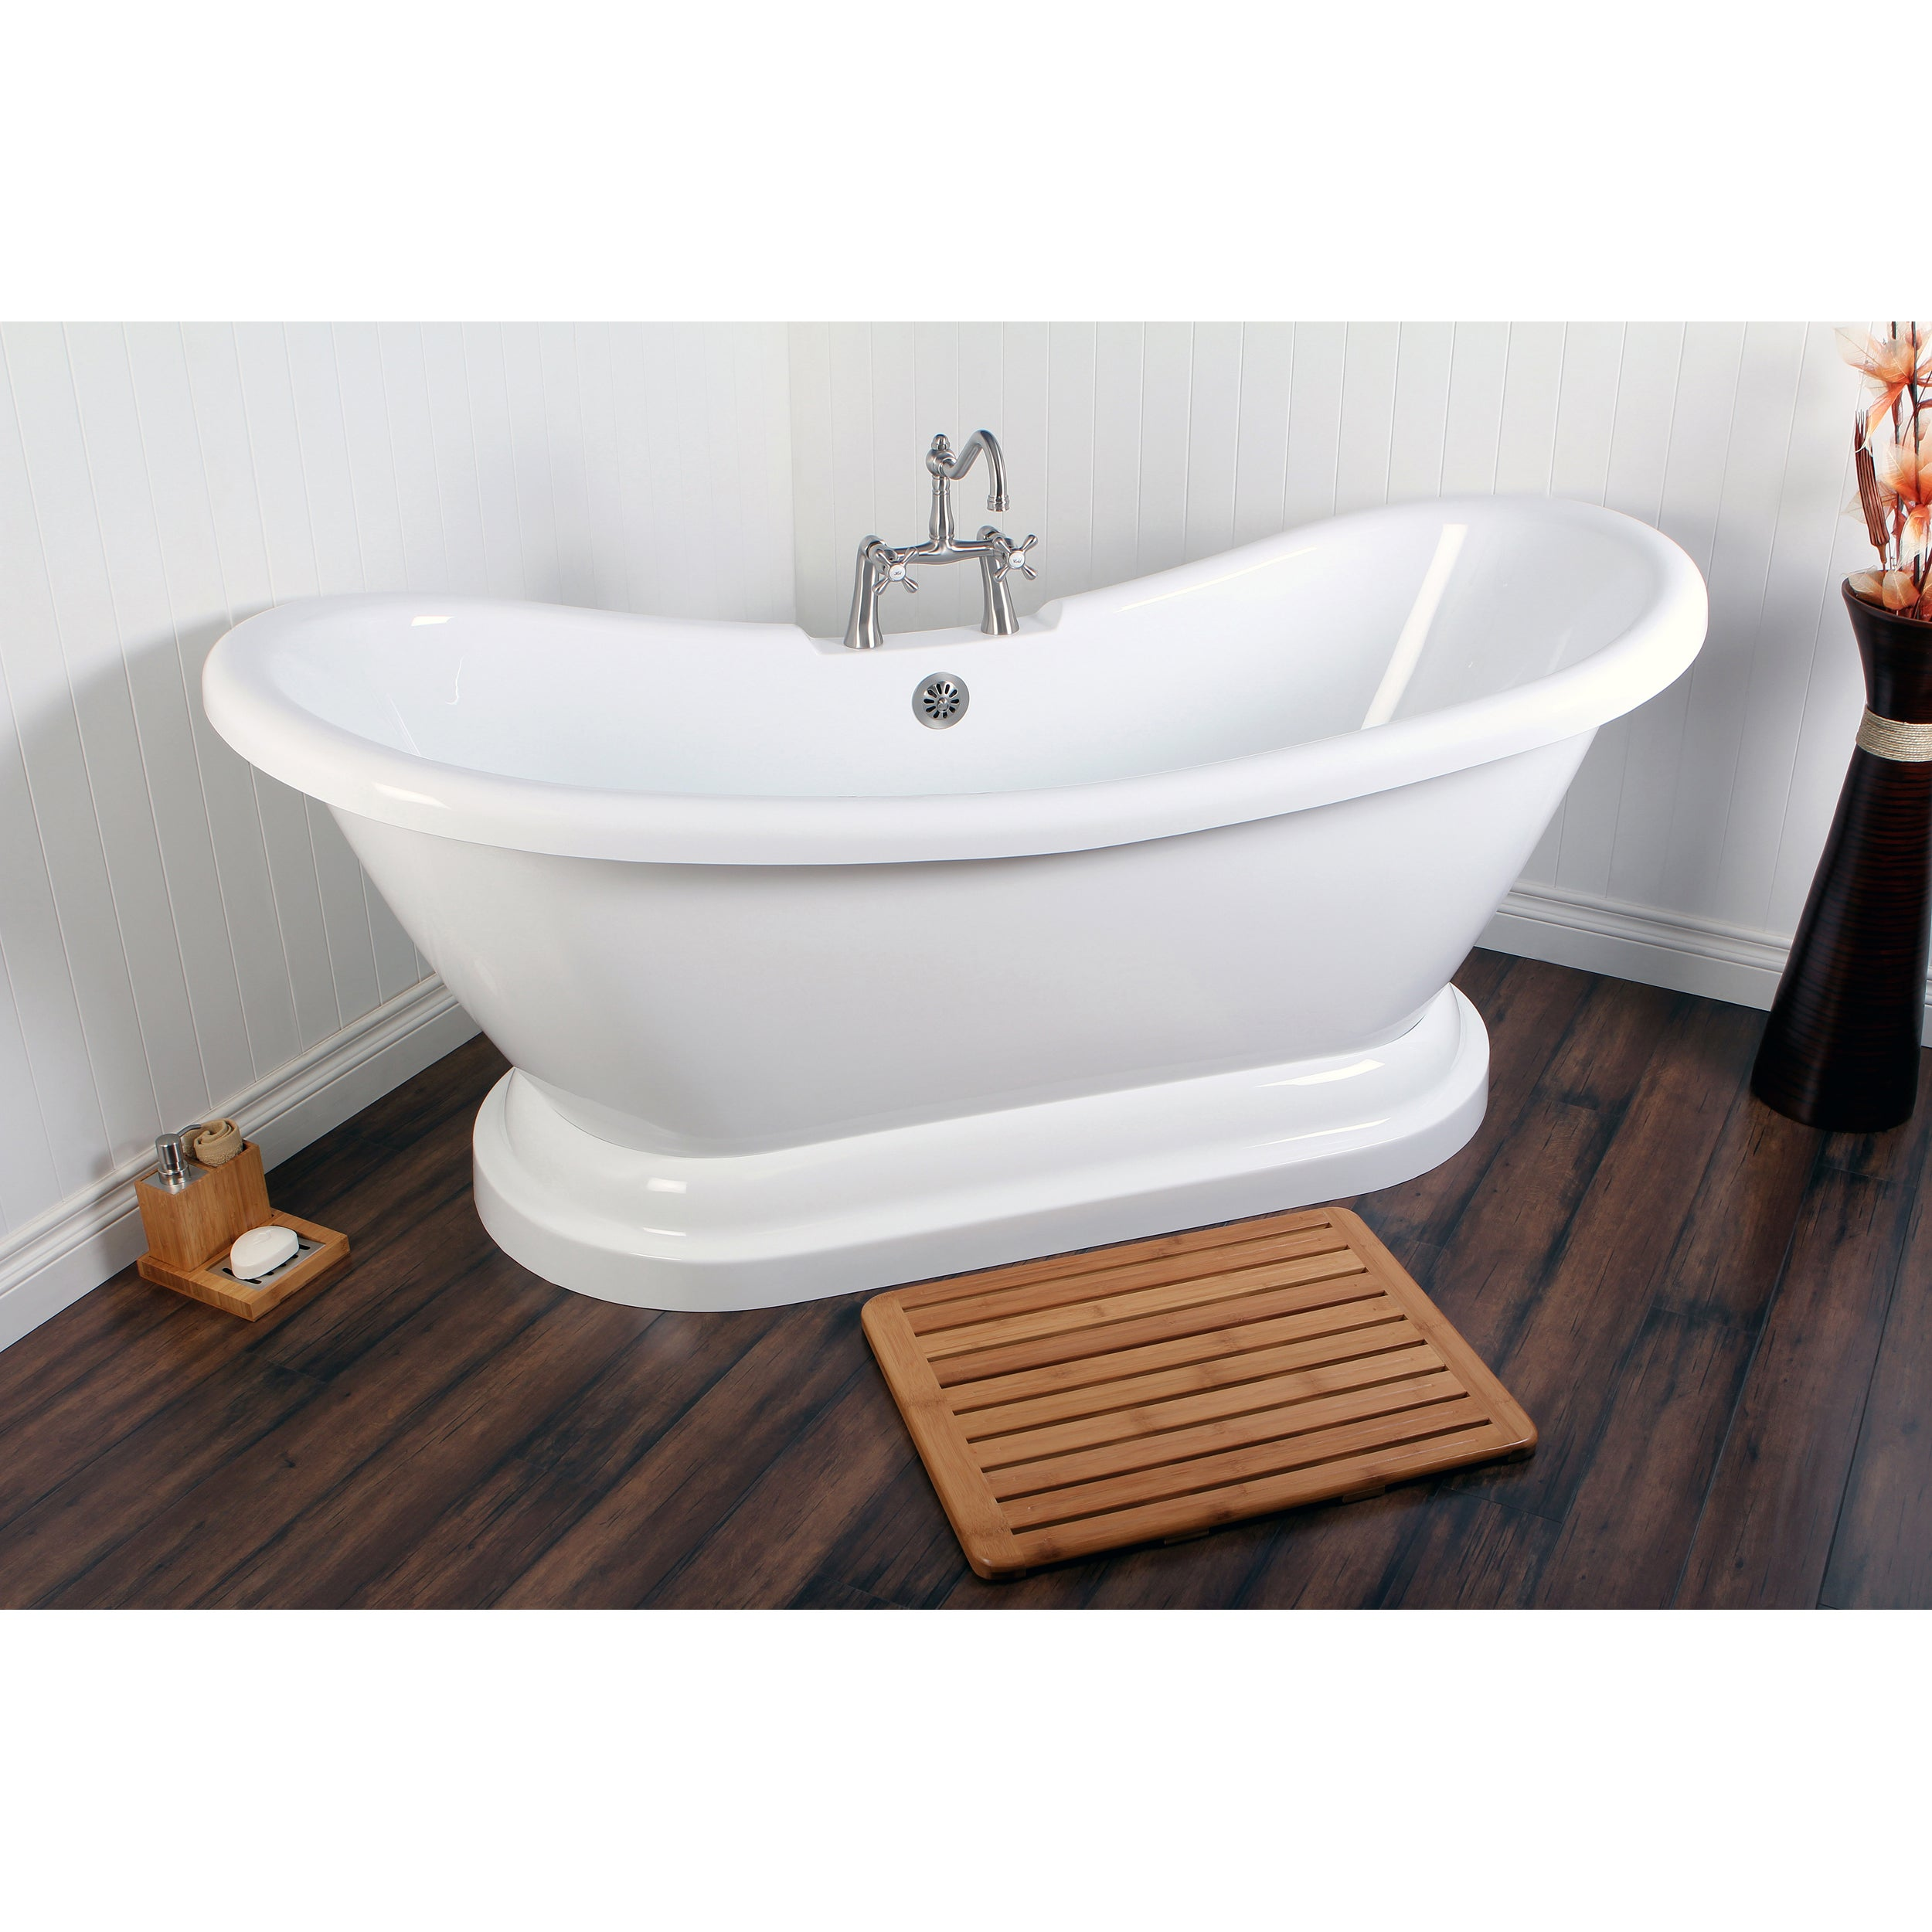 Buy Soaking Tubs Online at Overstock.com | Our Best Bathtubs Deals